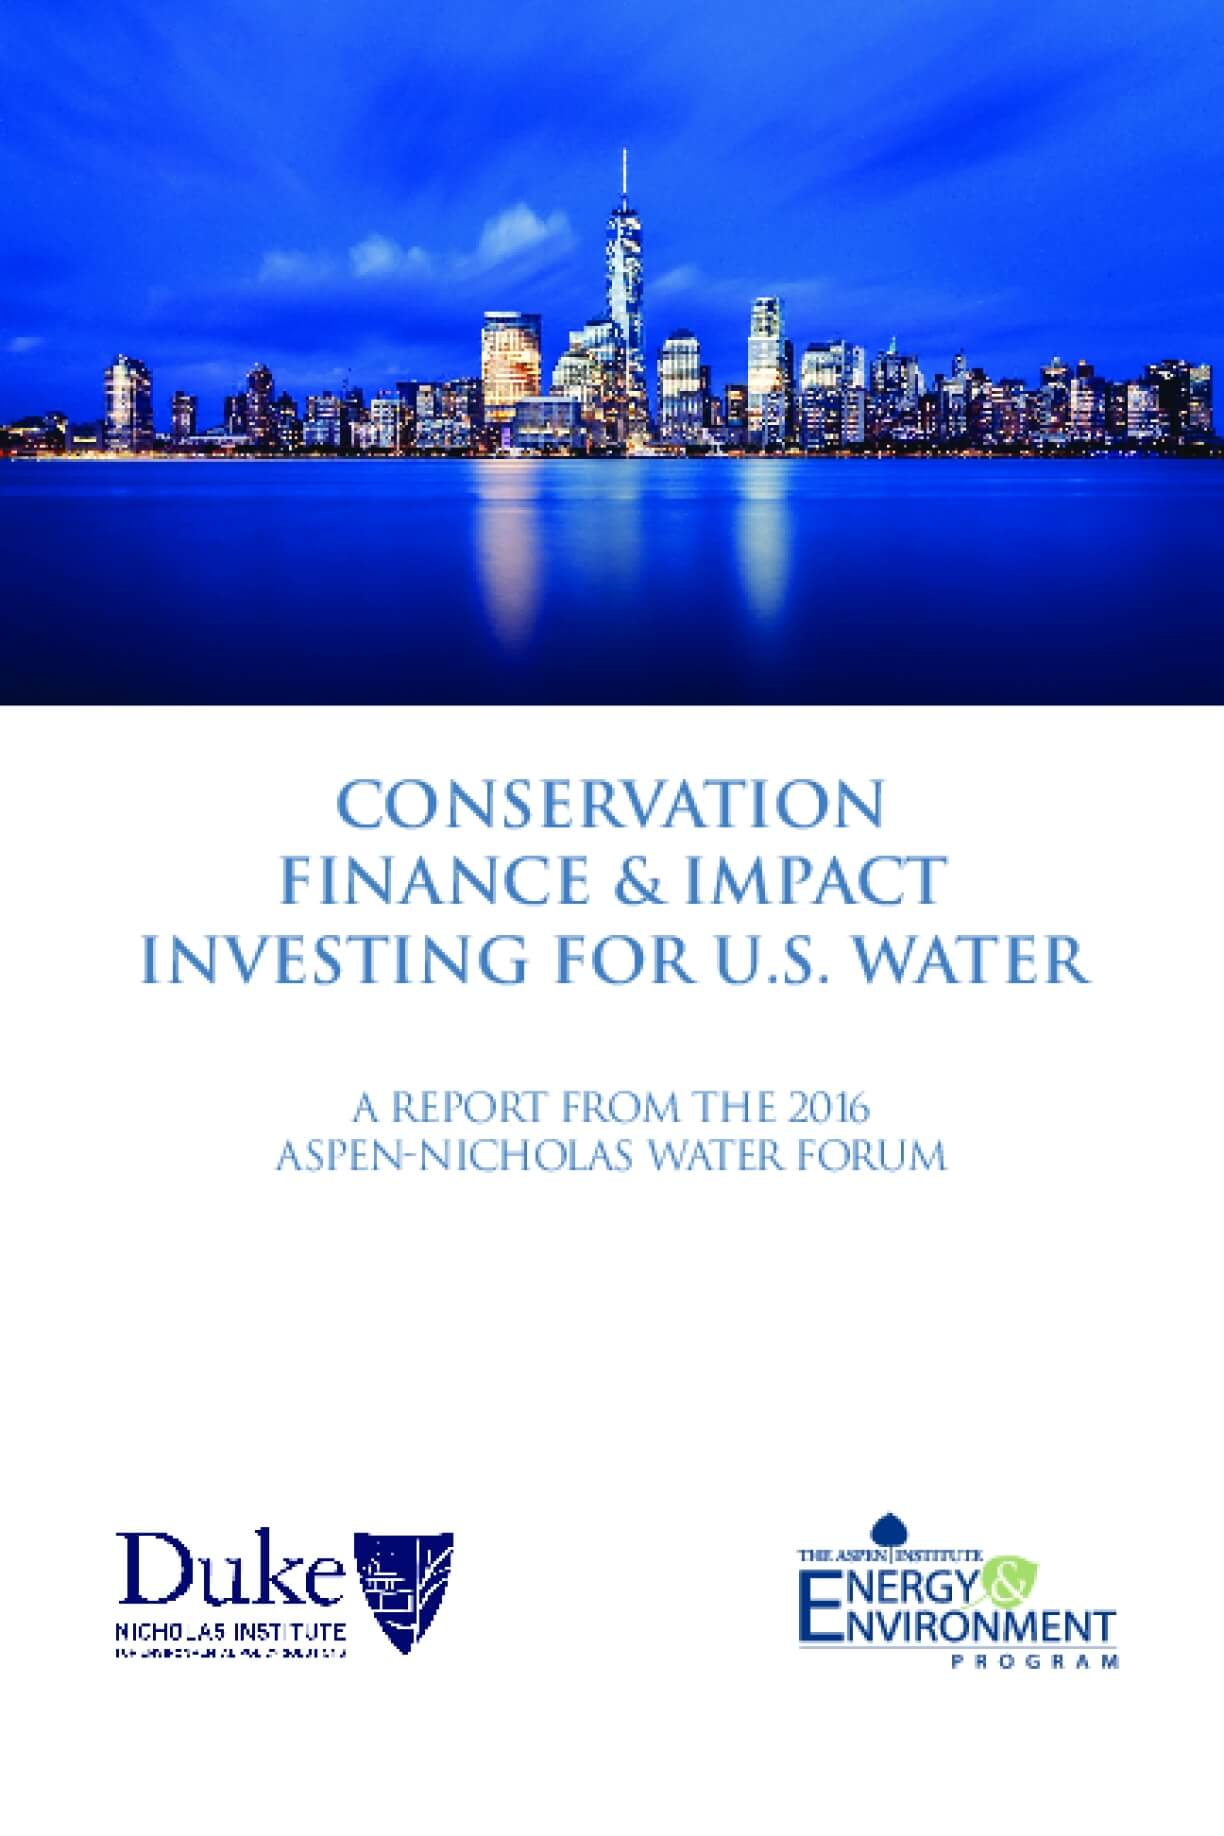 Conservation  Finance & Impact Invest for U.S. Water: A Report from the 2016 Aspen-Nicholas Water Forum